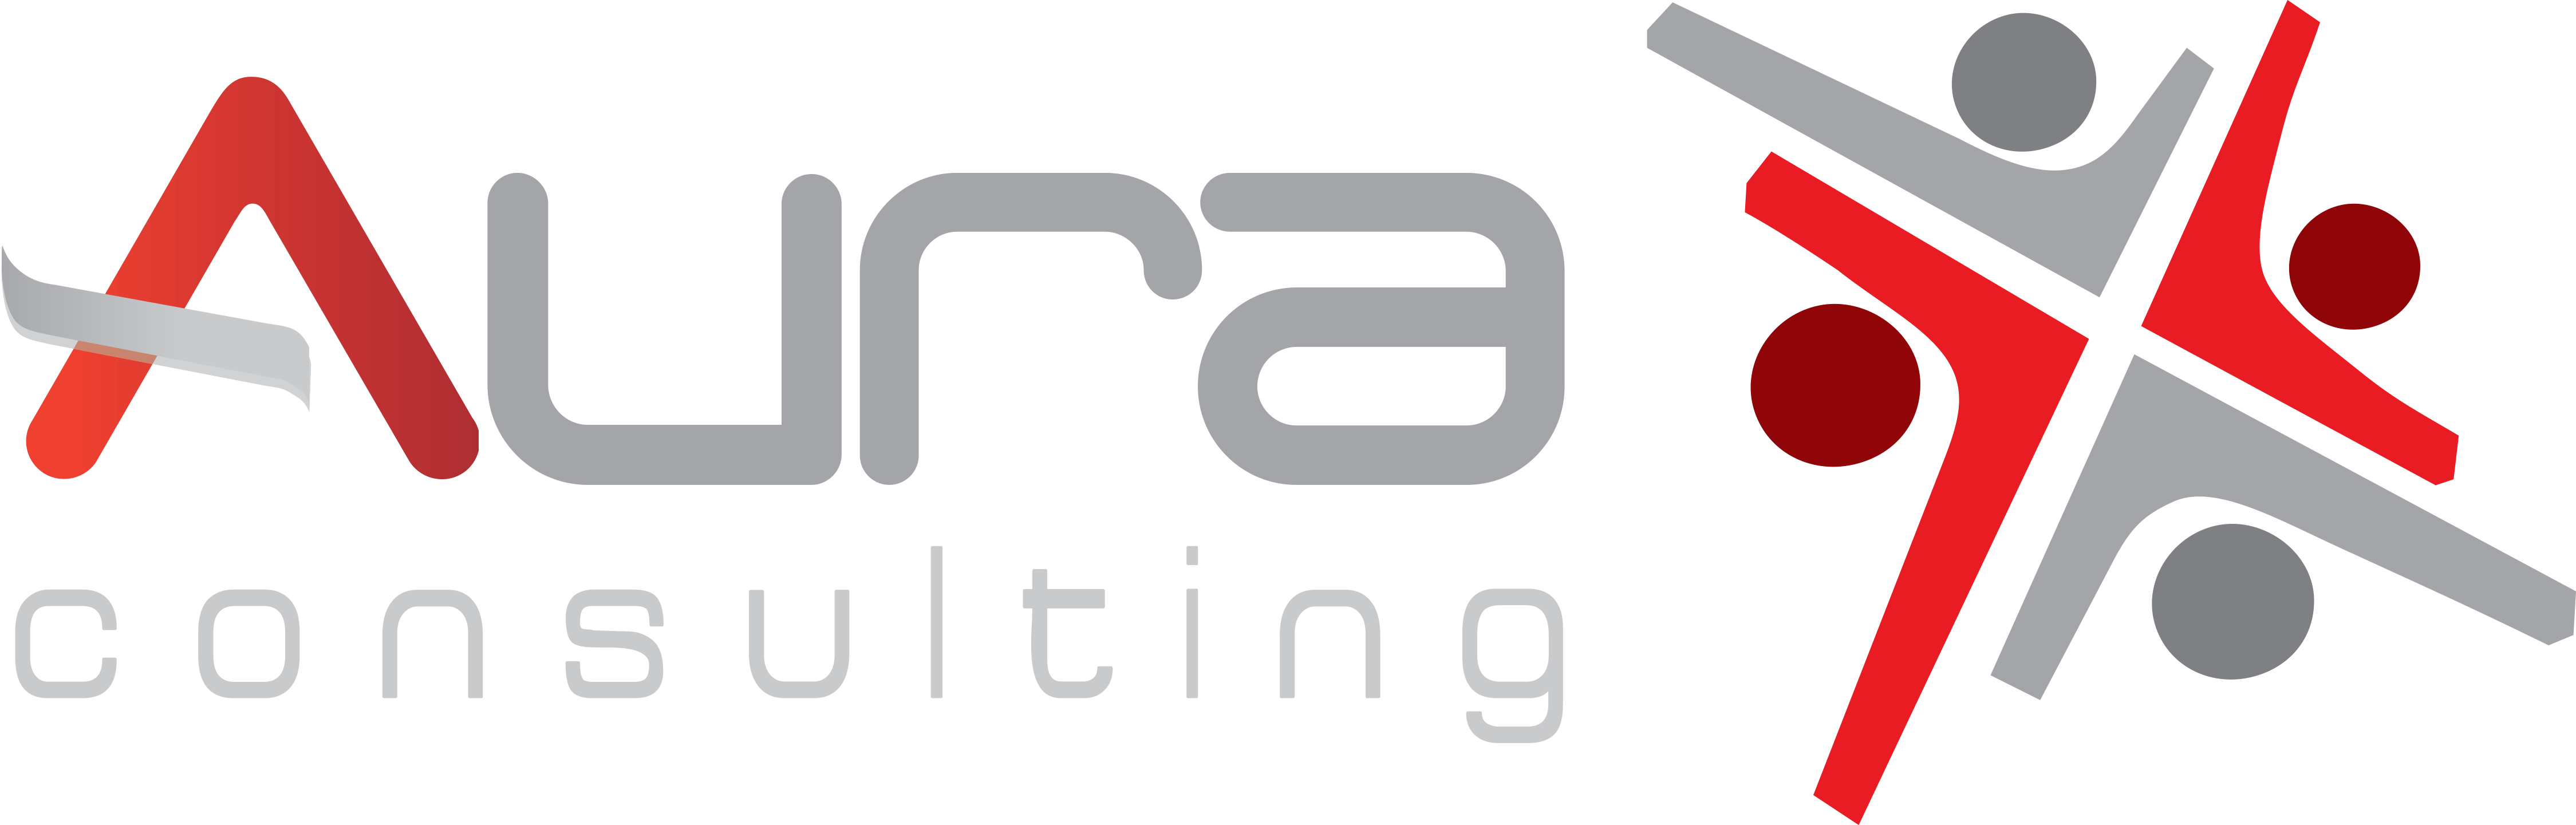 Aura Consulting - Digital Agency